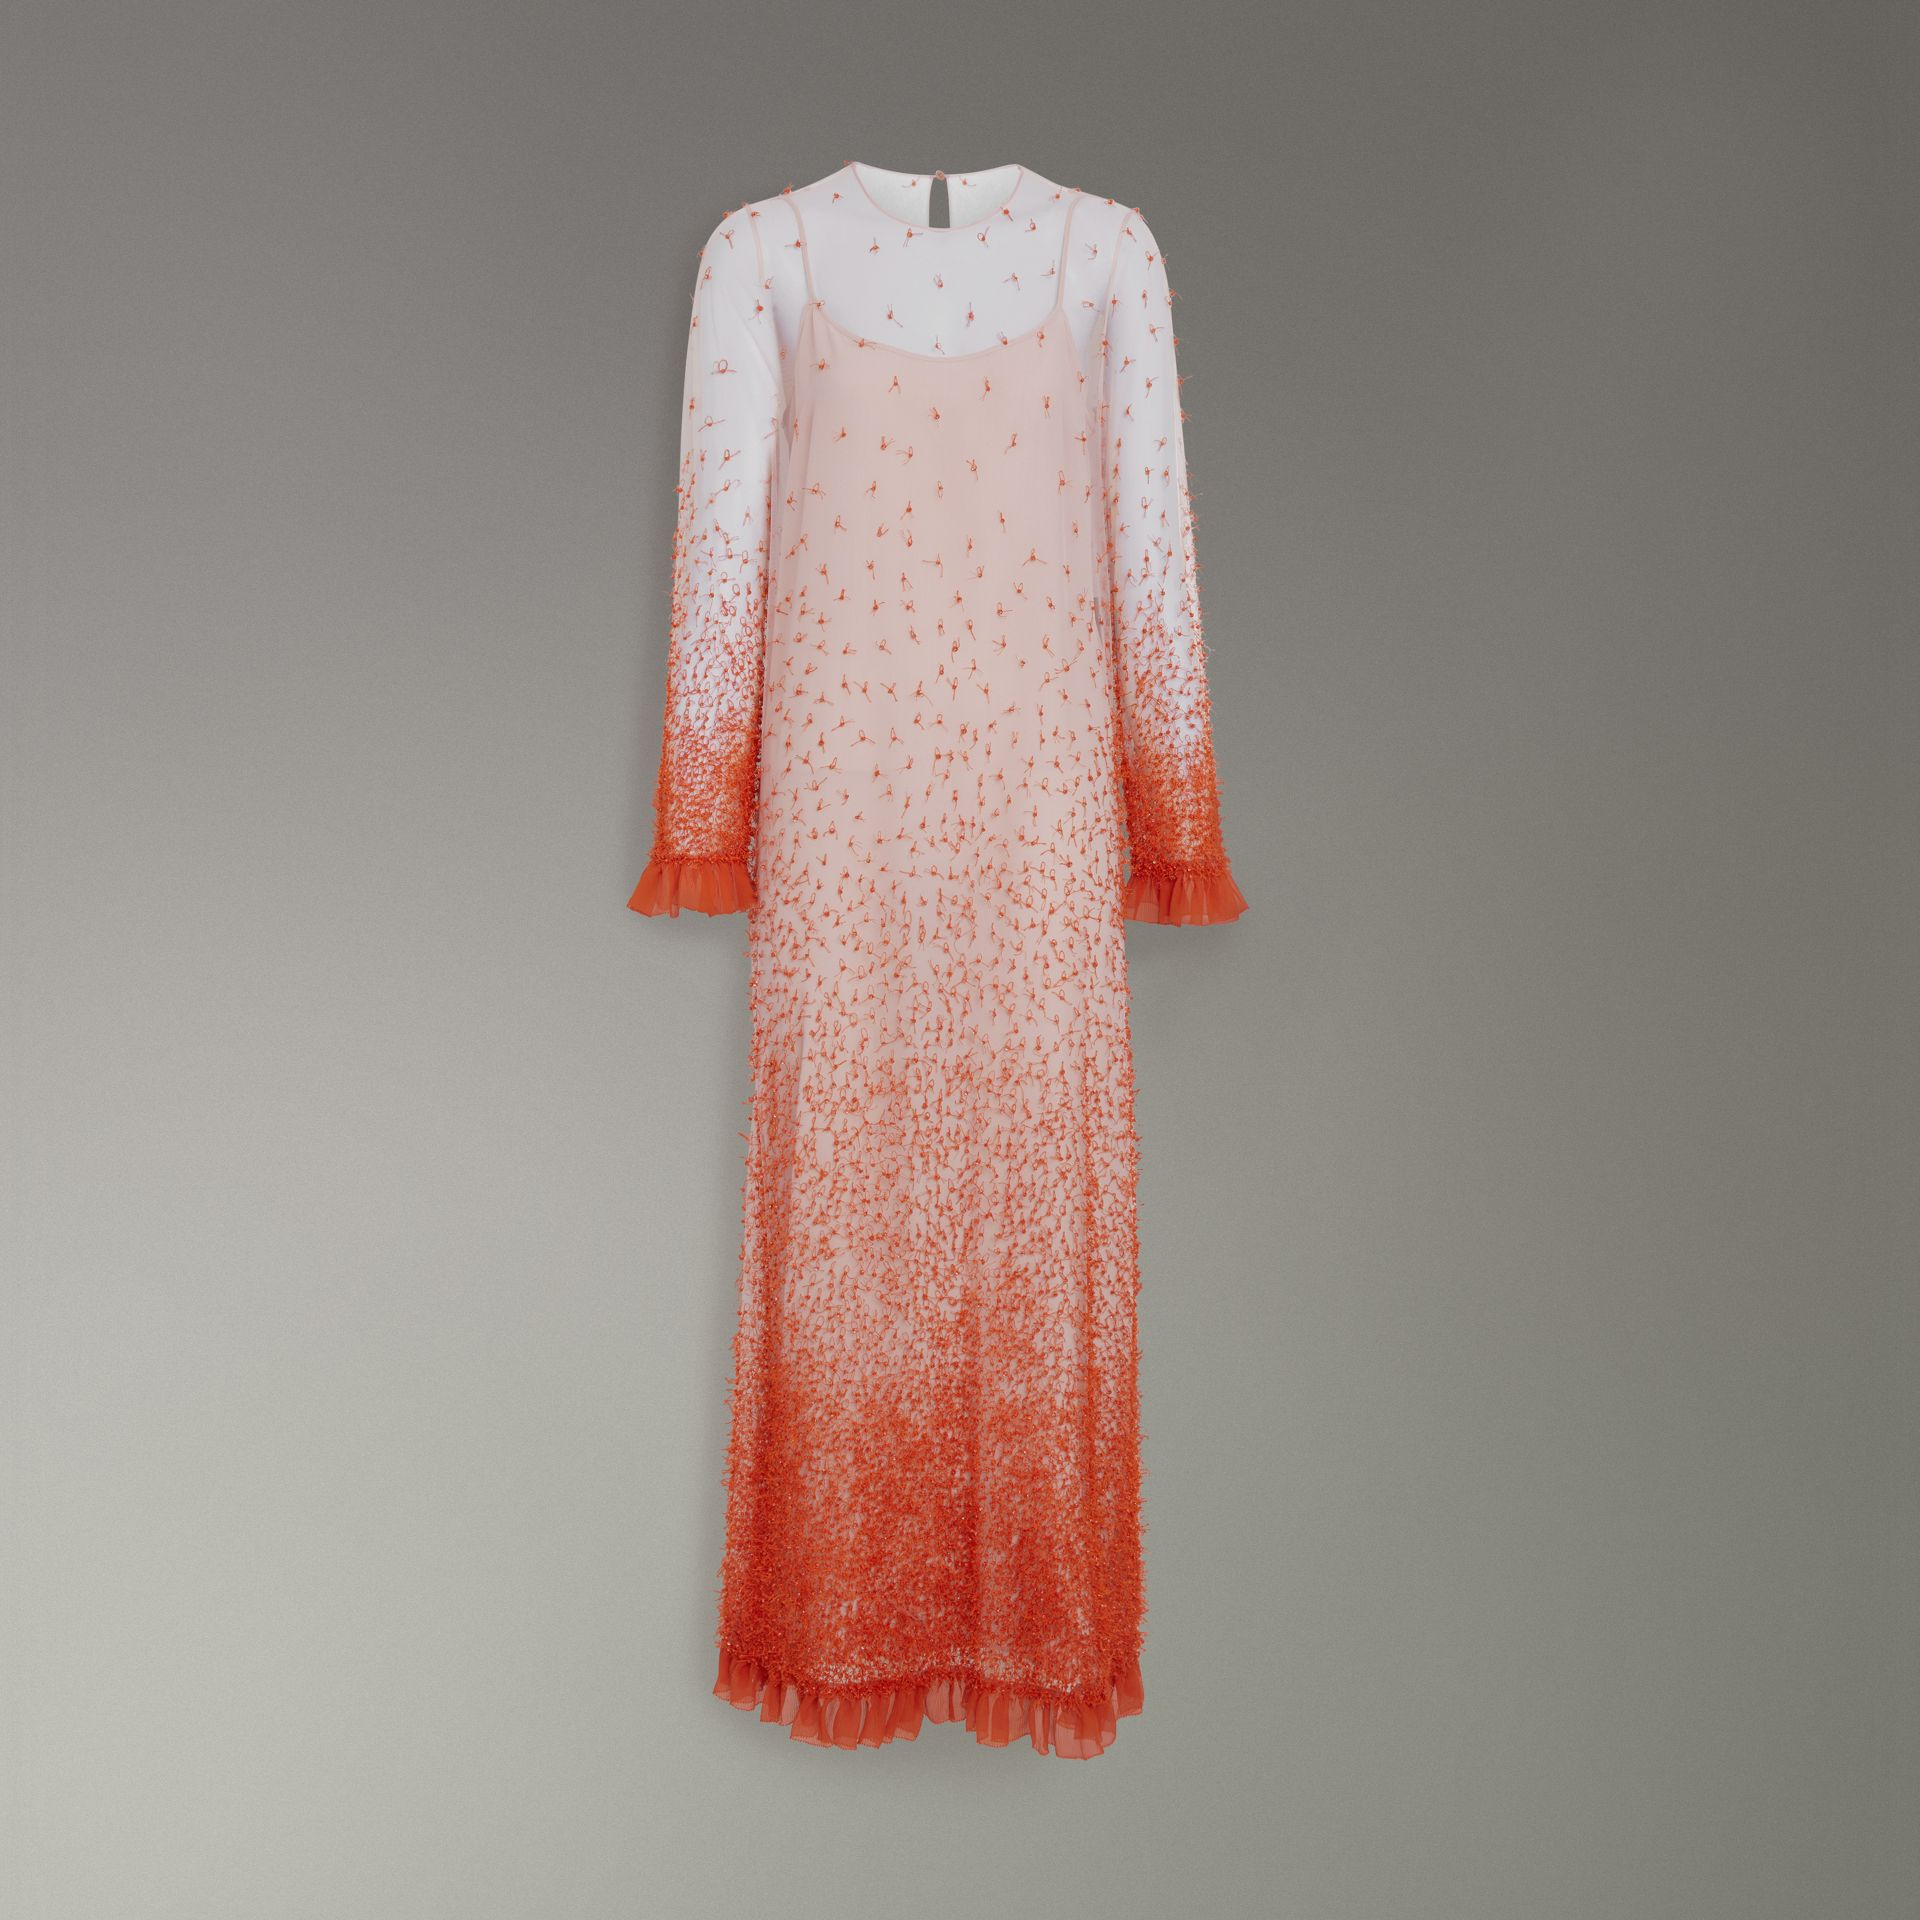 Dégradé Hand-beaded Crepon Dress in Coral - Women | Burberry United Kingdom - gallery image 3